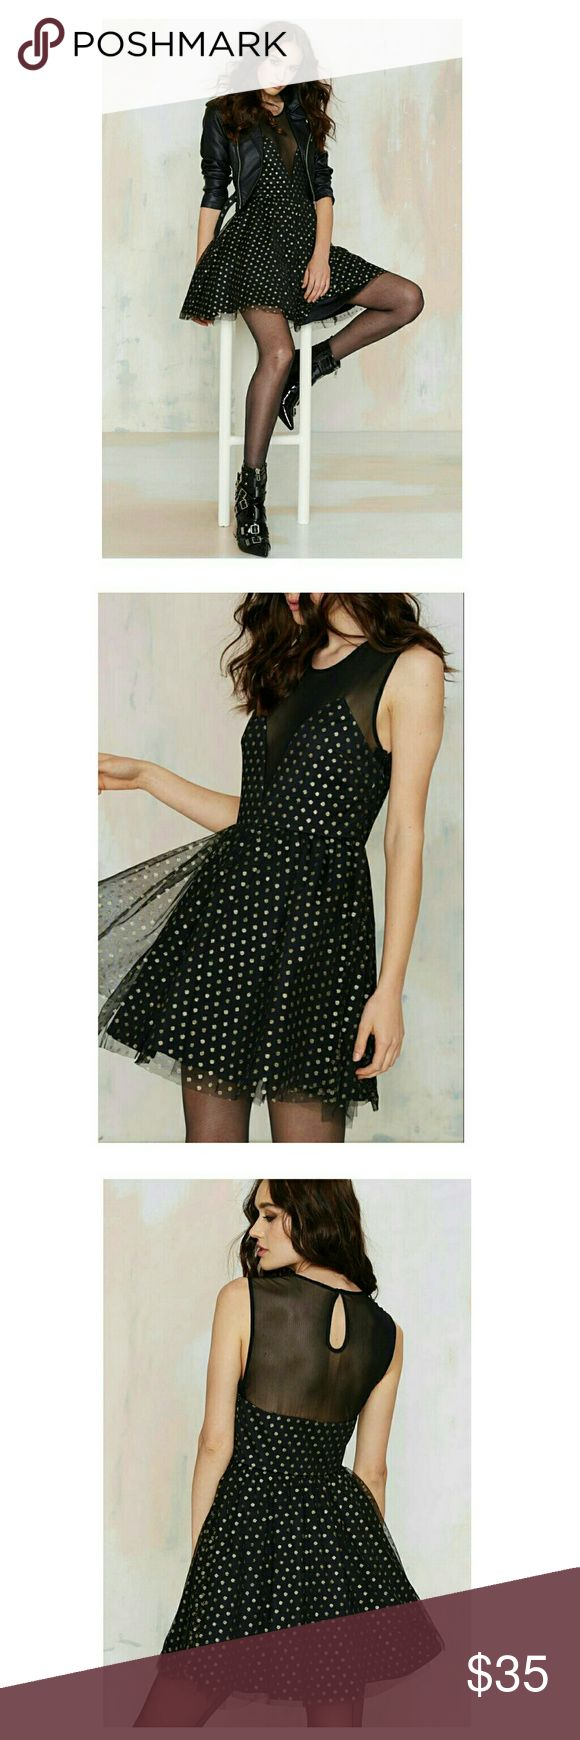 💕Nast Gal💕 💕NWOT- excellent condition On the Spot Poka Dot dress Color: black/ gold mettalic poka dots Nasty Gal Dresses